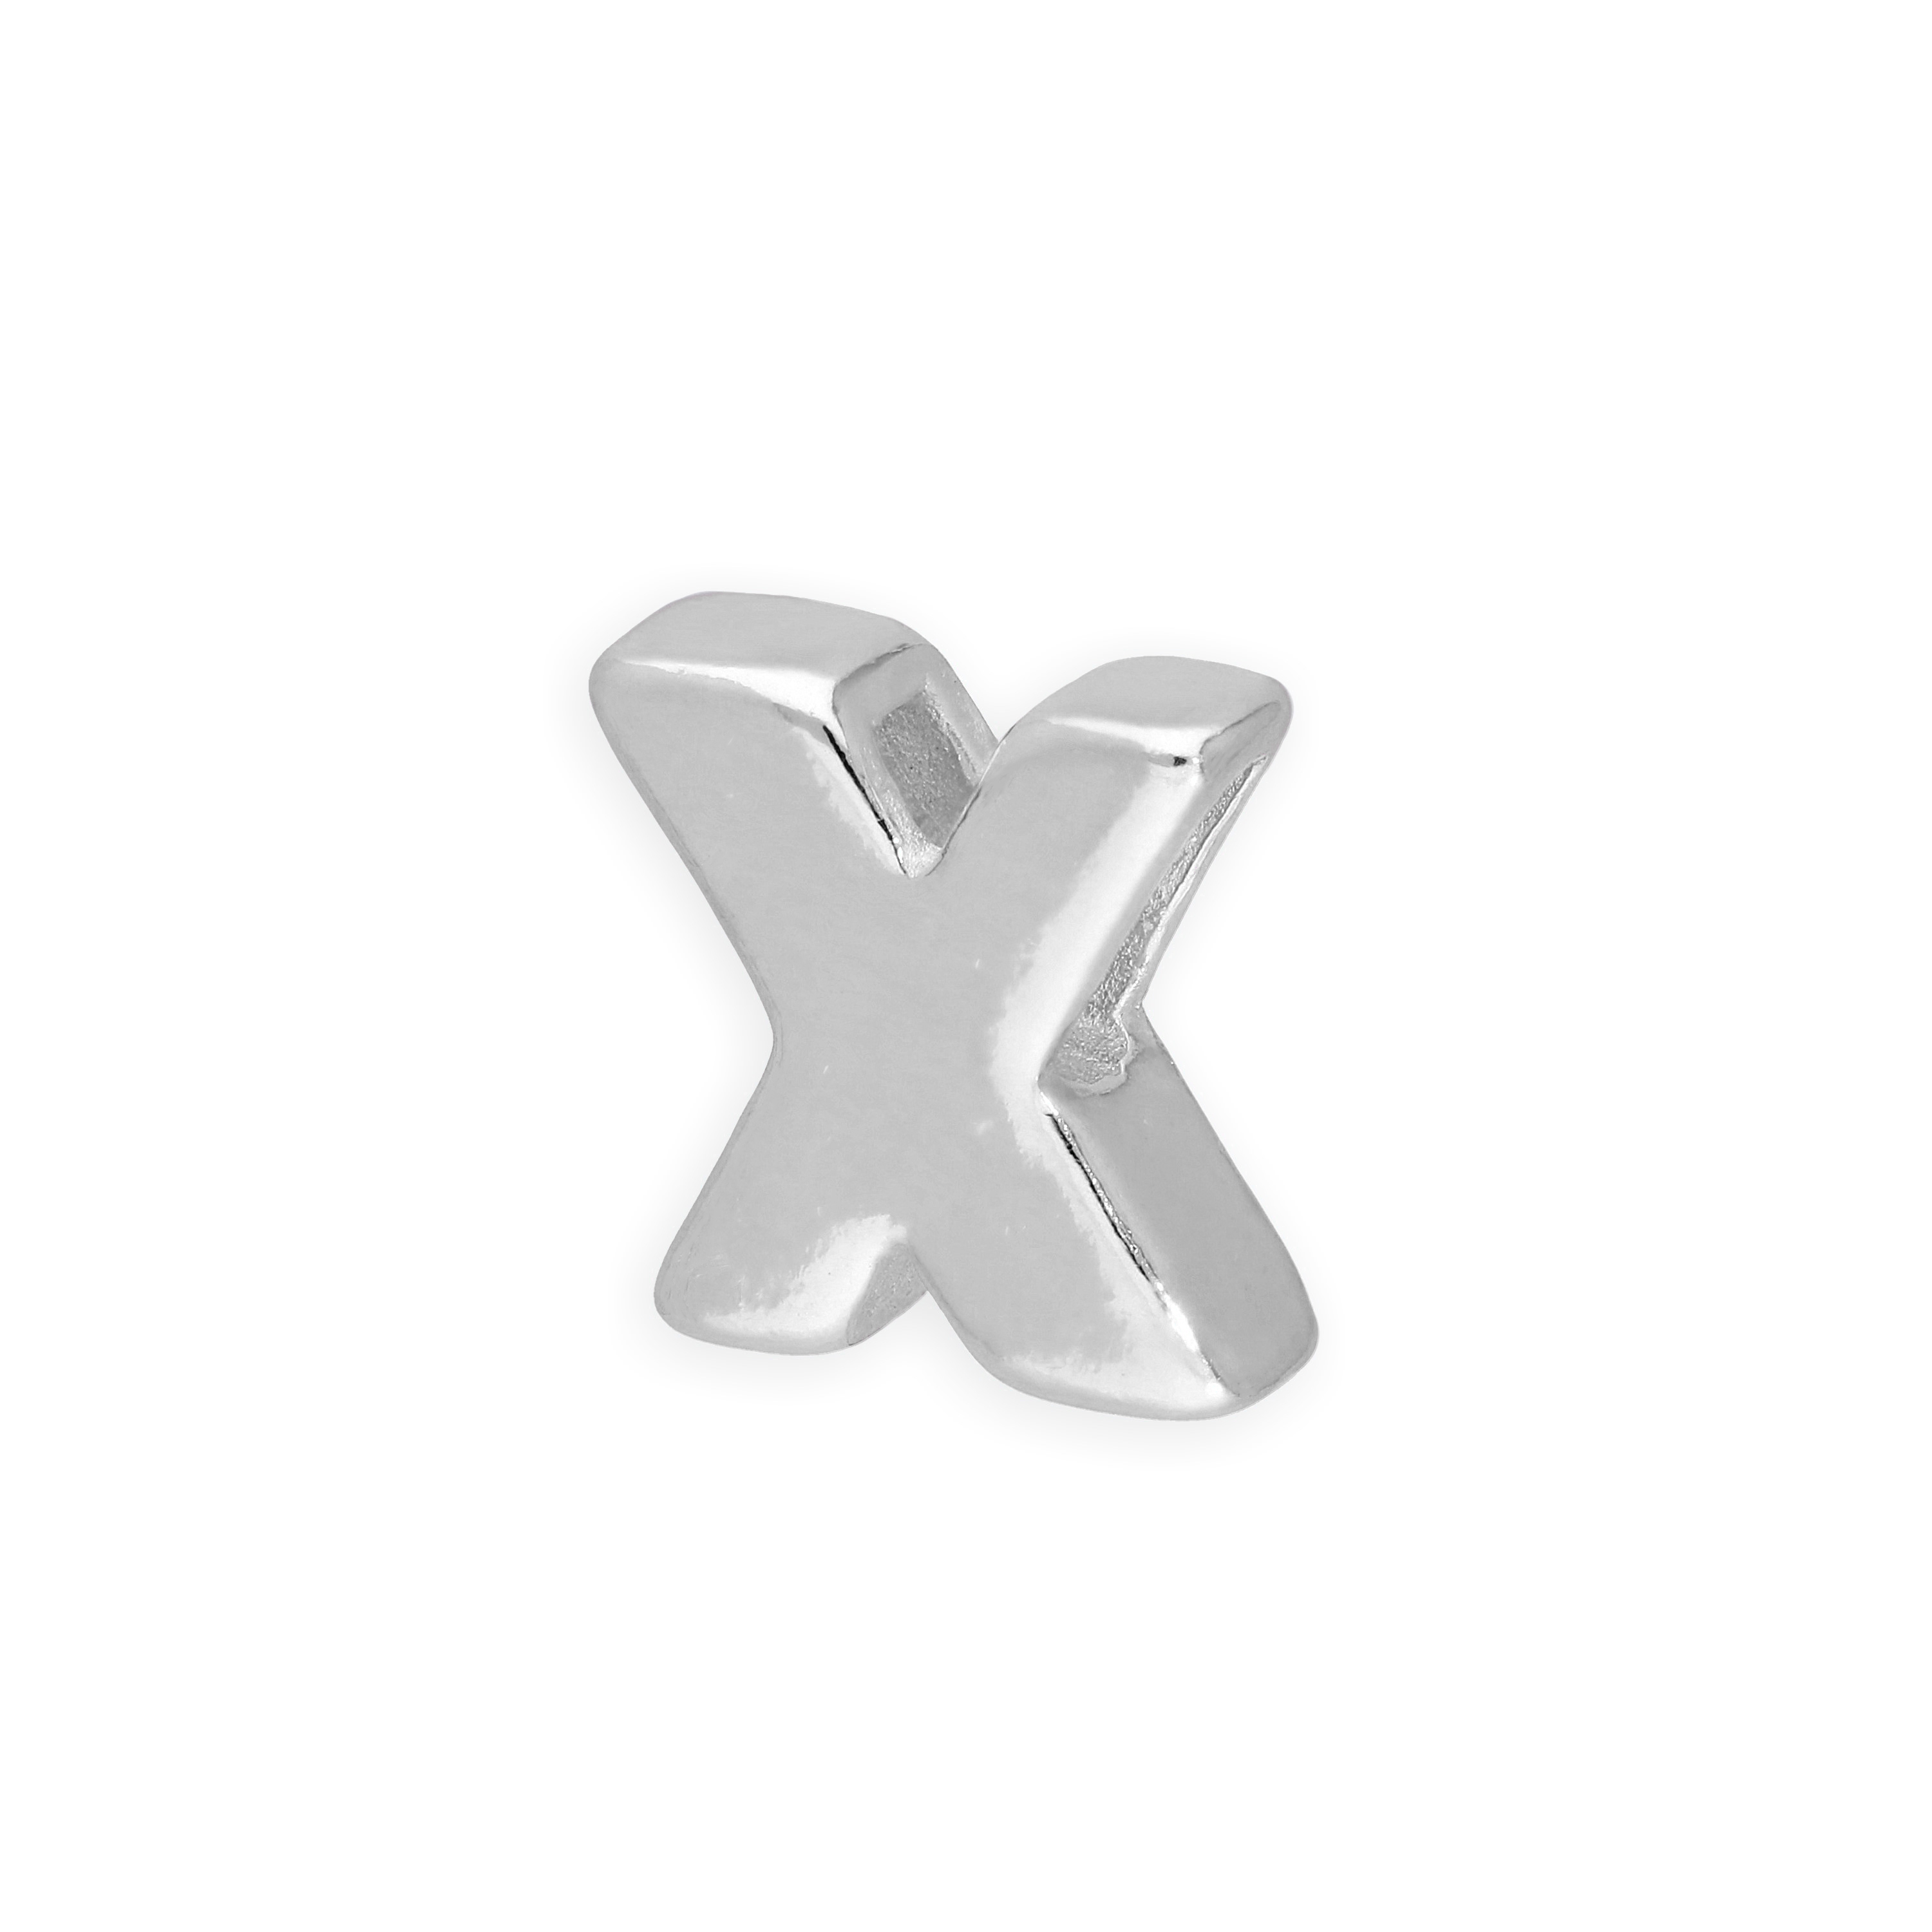 An image of Sterling Silver Alphabet Letter Threader Bead X